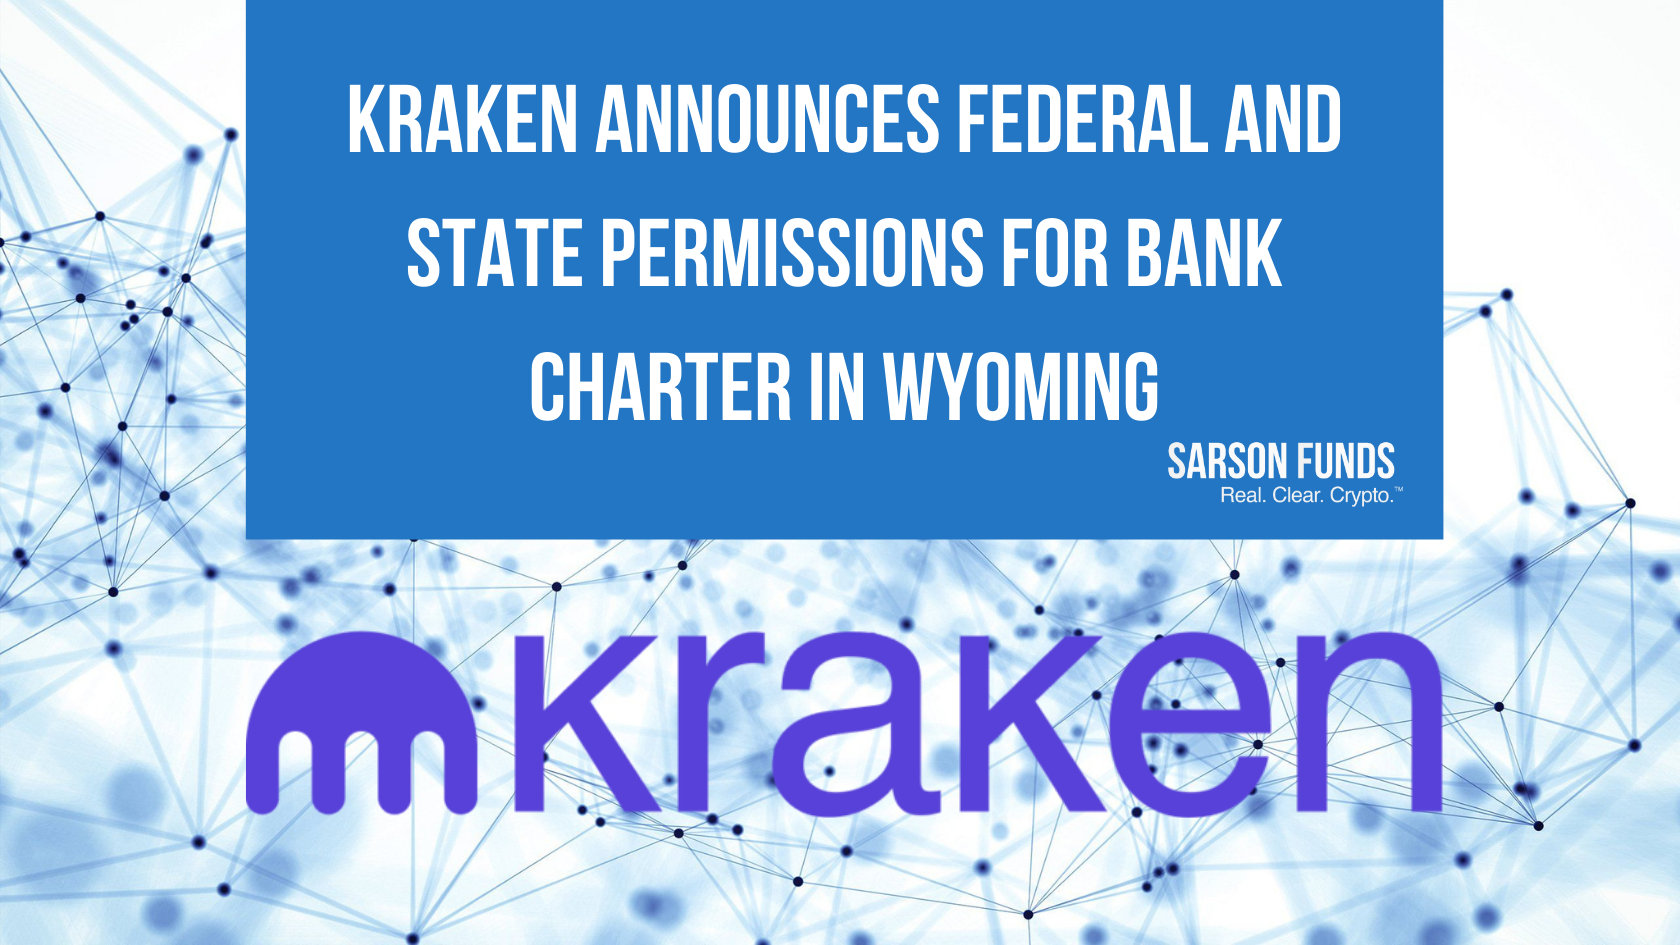 Sarson Funds: Kraken Becomes First Digital Asset Bank After Receiving Federal and State Charters